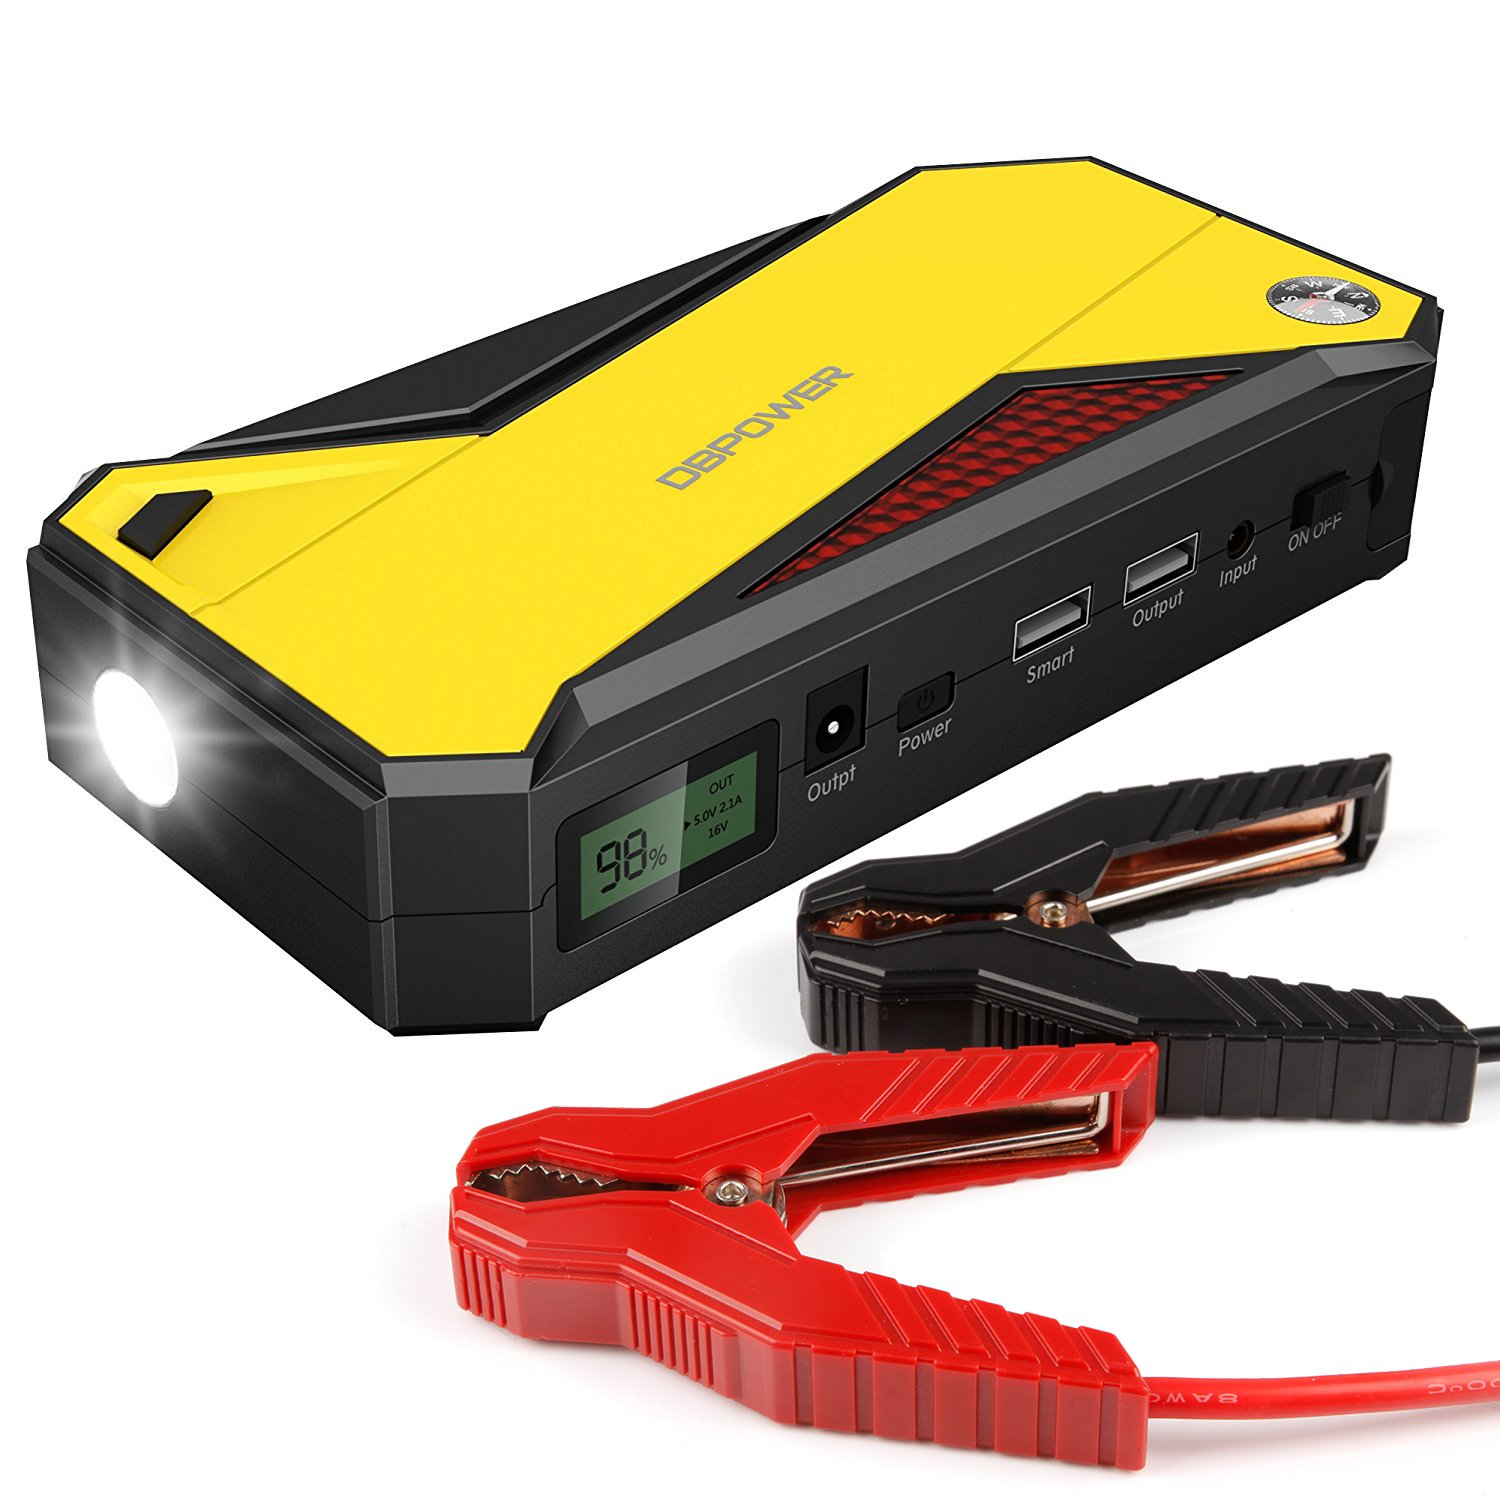 DBPOWER 600A Peak 18000mAh Portable Car Jump Starter (up to 6.5L Gas, 5.2L Diesel Engine) Battery Booster and Phone Charger with Smart Charging Port (Black/Yellow) 4336330542